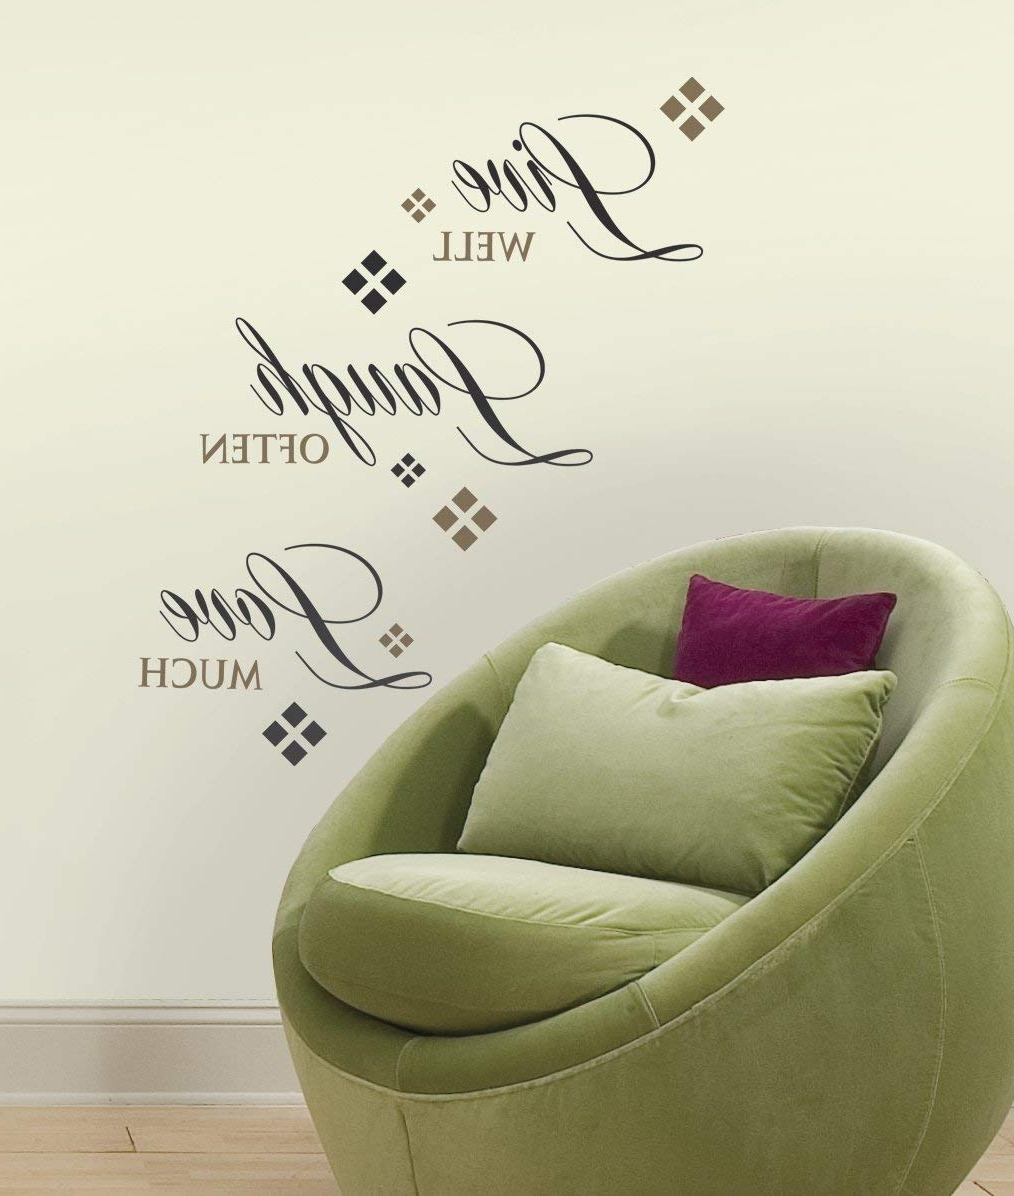 Stick On Wall Art With Preferred Roommates Rmk1396Scs Live, Love, Laugh Peel & Stick Wall Decals,  (View 15 of 20)